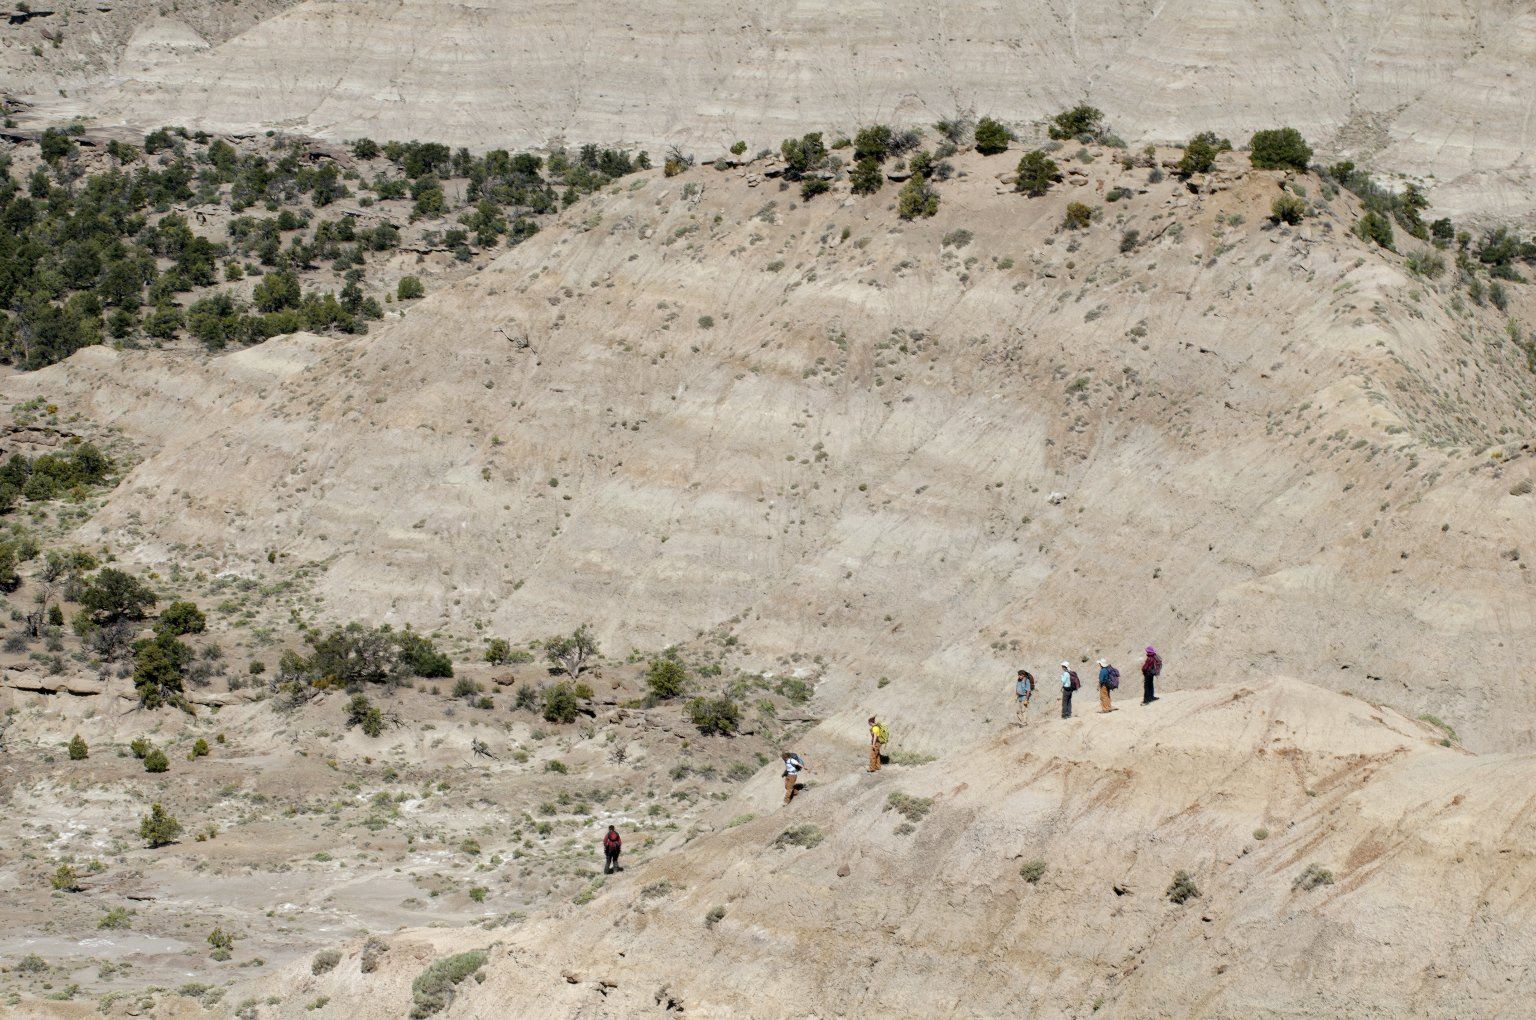 The DMNS group inches down an incline in the Kaiparowits Plateau.